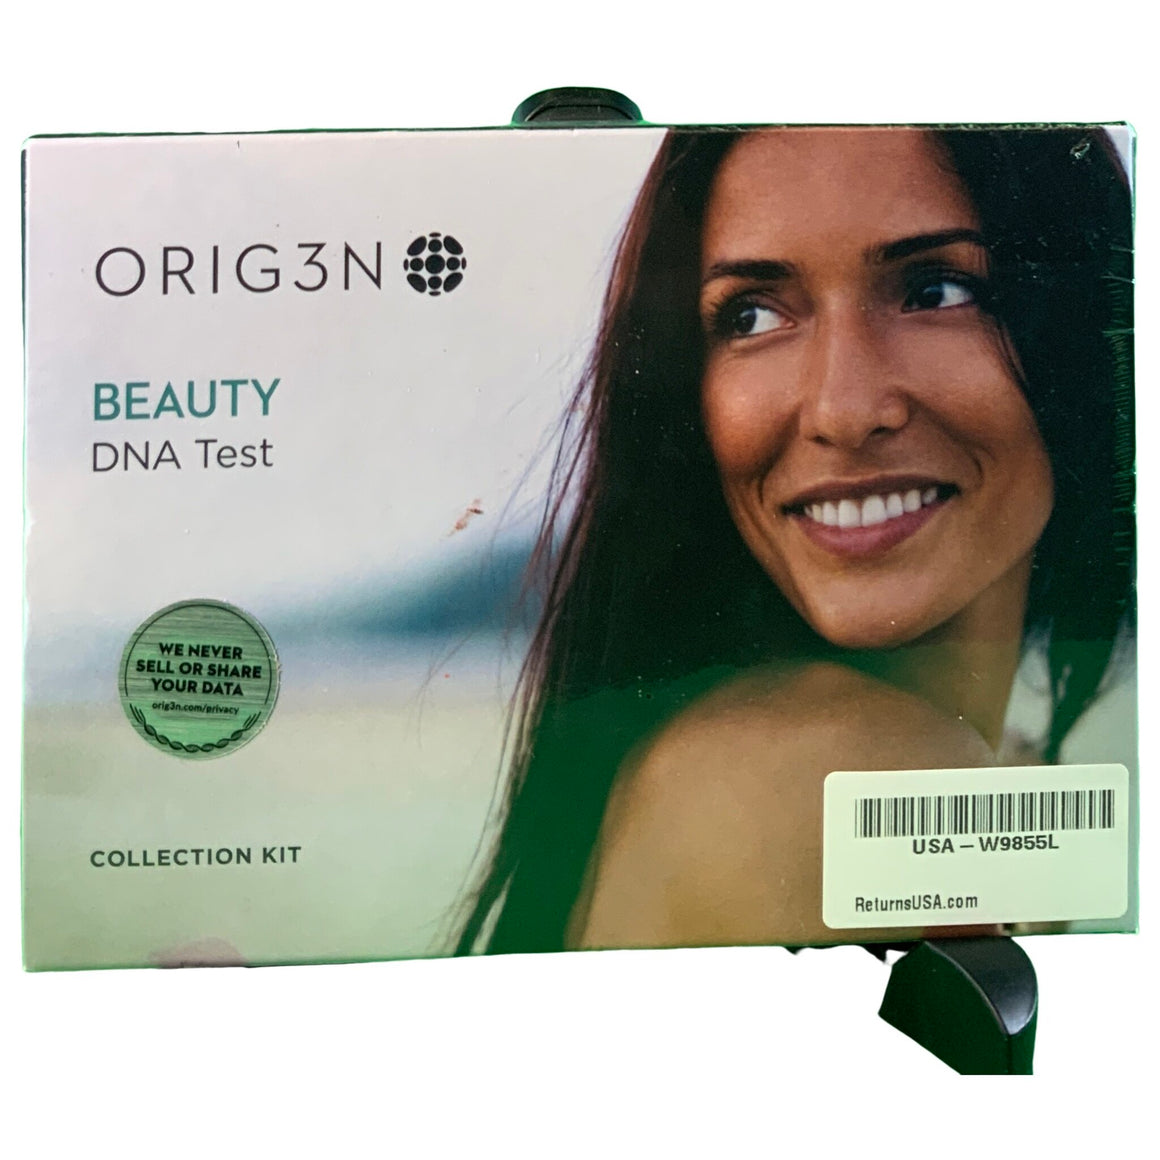 Genetic Home Dna Test Kit, Beauty - Orig3N